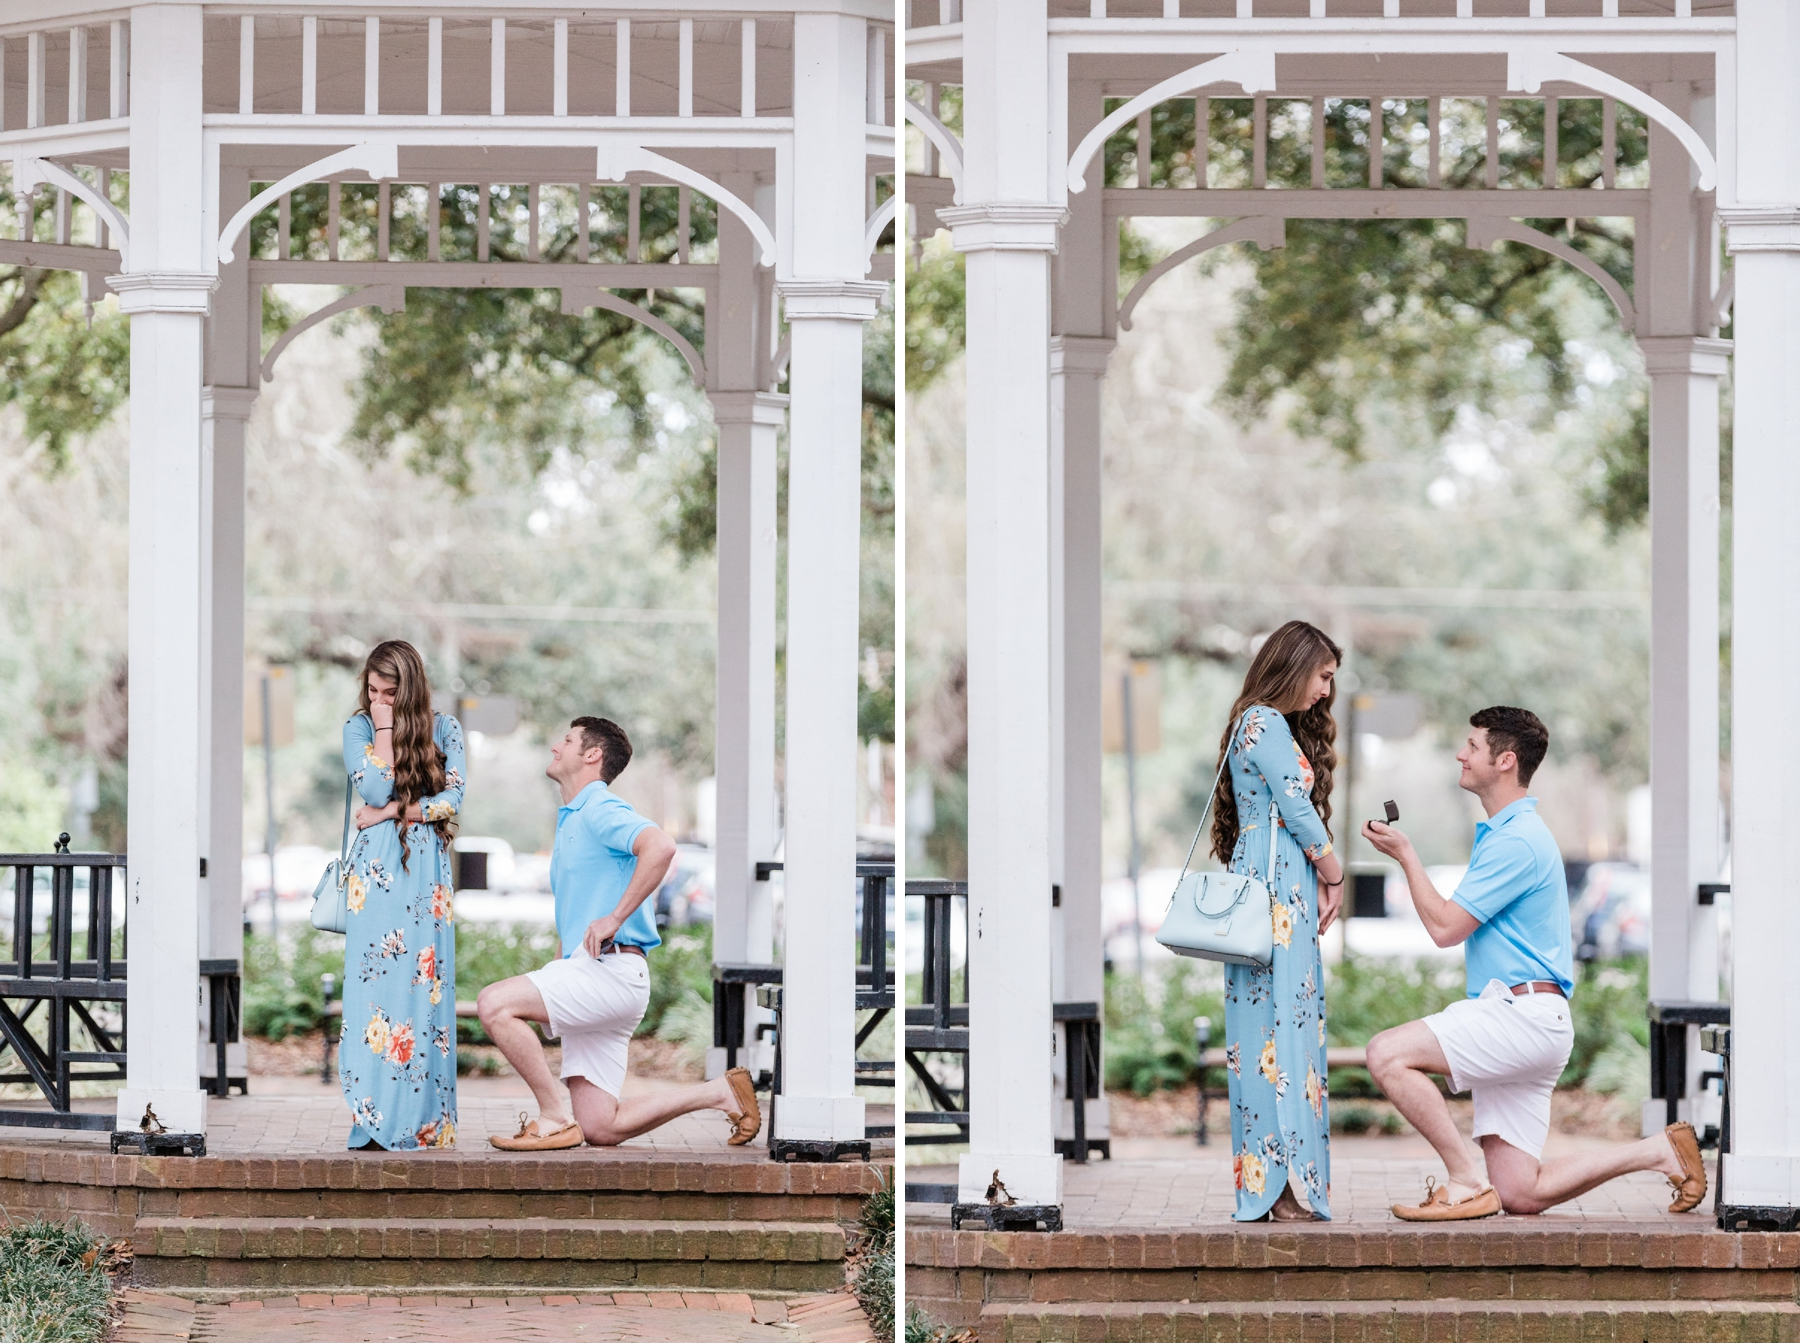 apt-b-photography-savannah-proposal-photographer-1.jpg